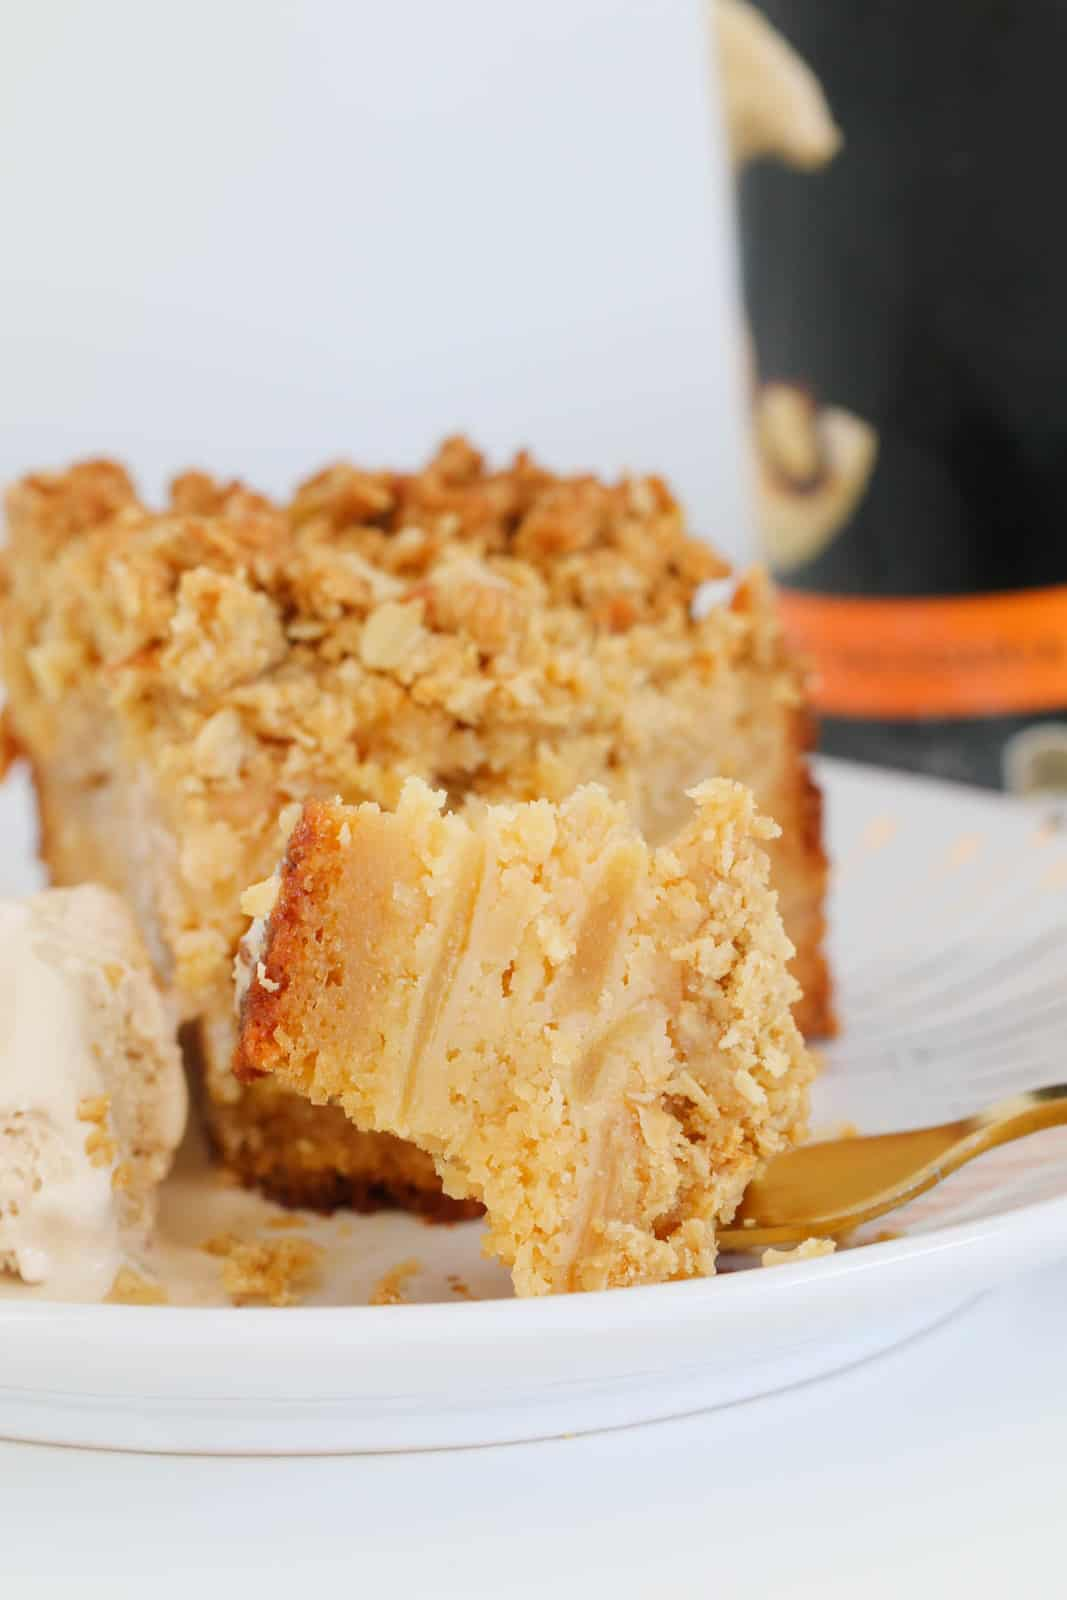 A serve of Apple Crumble Cake with some on a fork showing layers of sliced apple